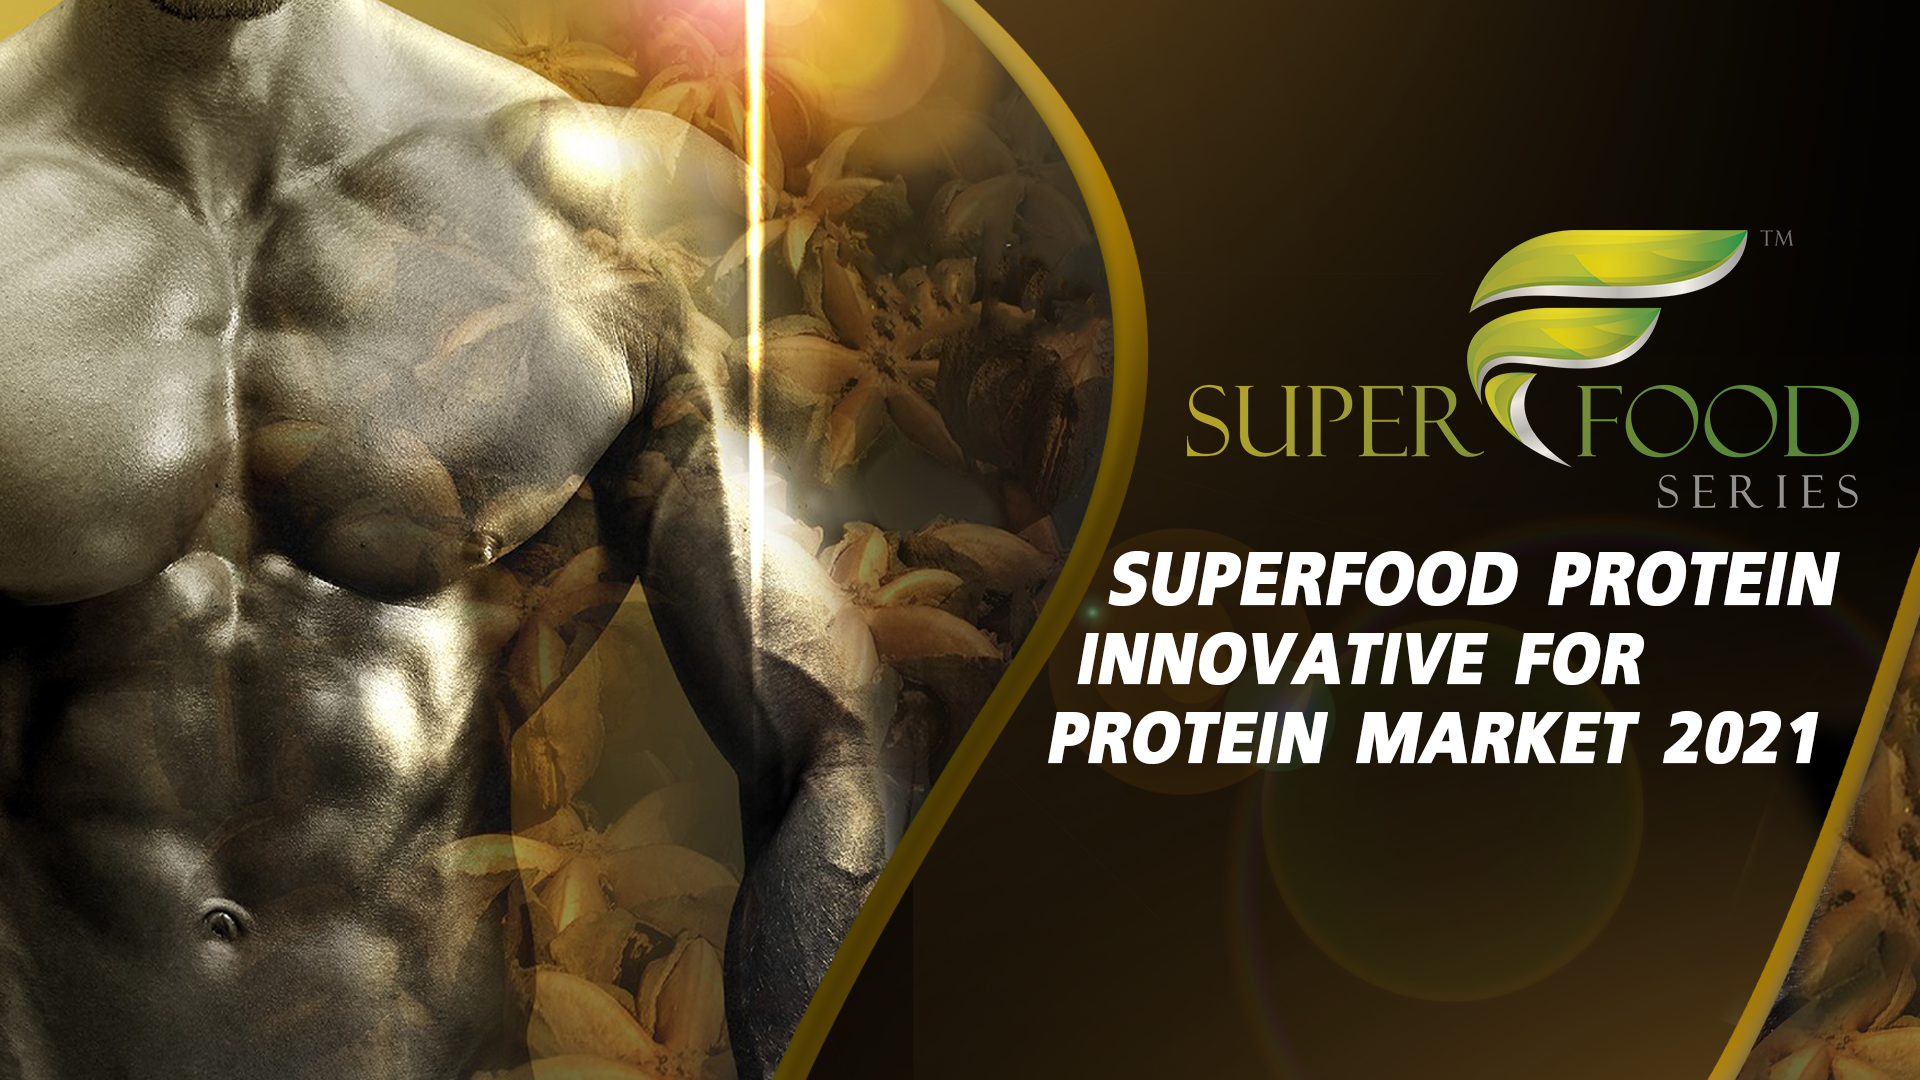 Sacha inchi superfood protein innovative for protein market 2021